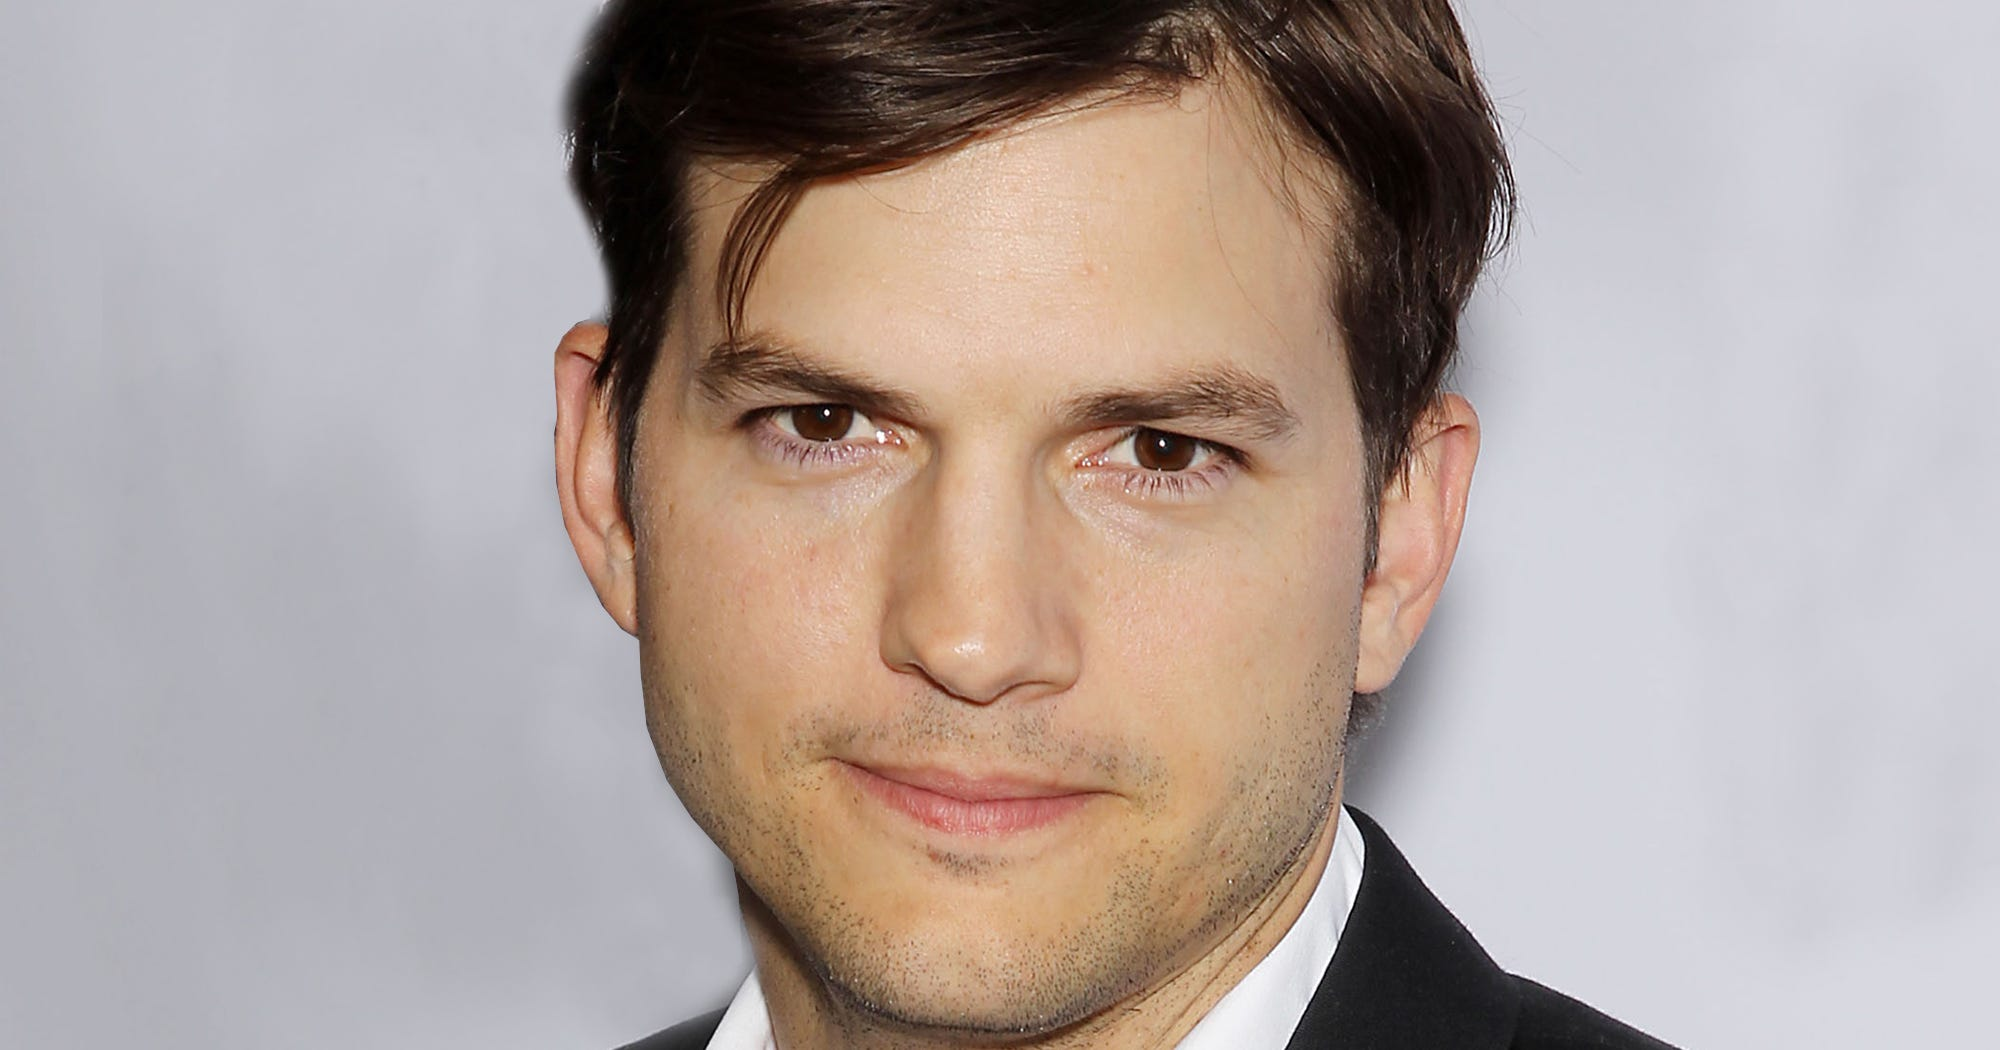 Ashton Kutcher Is Glad Natalie Portman Is Talking About Their No Strings Attached Wage Gap